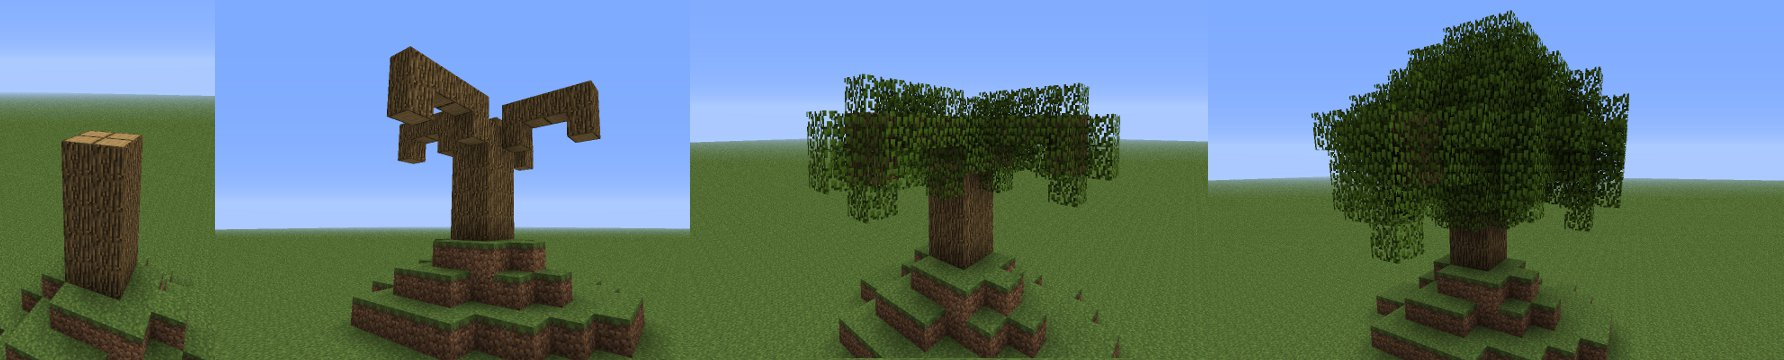 modren garden design minecraft pe house blueprints exeoinccom in ideas - Minecraft Garden Designs